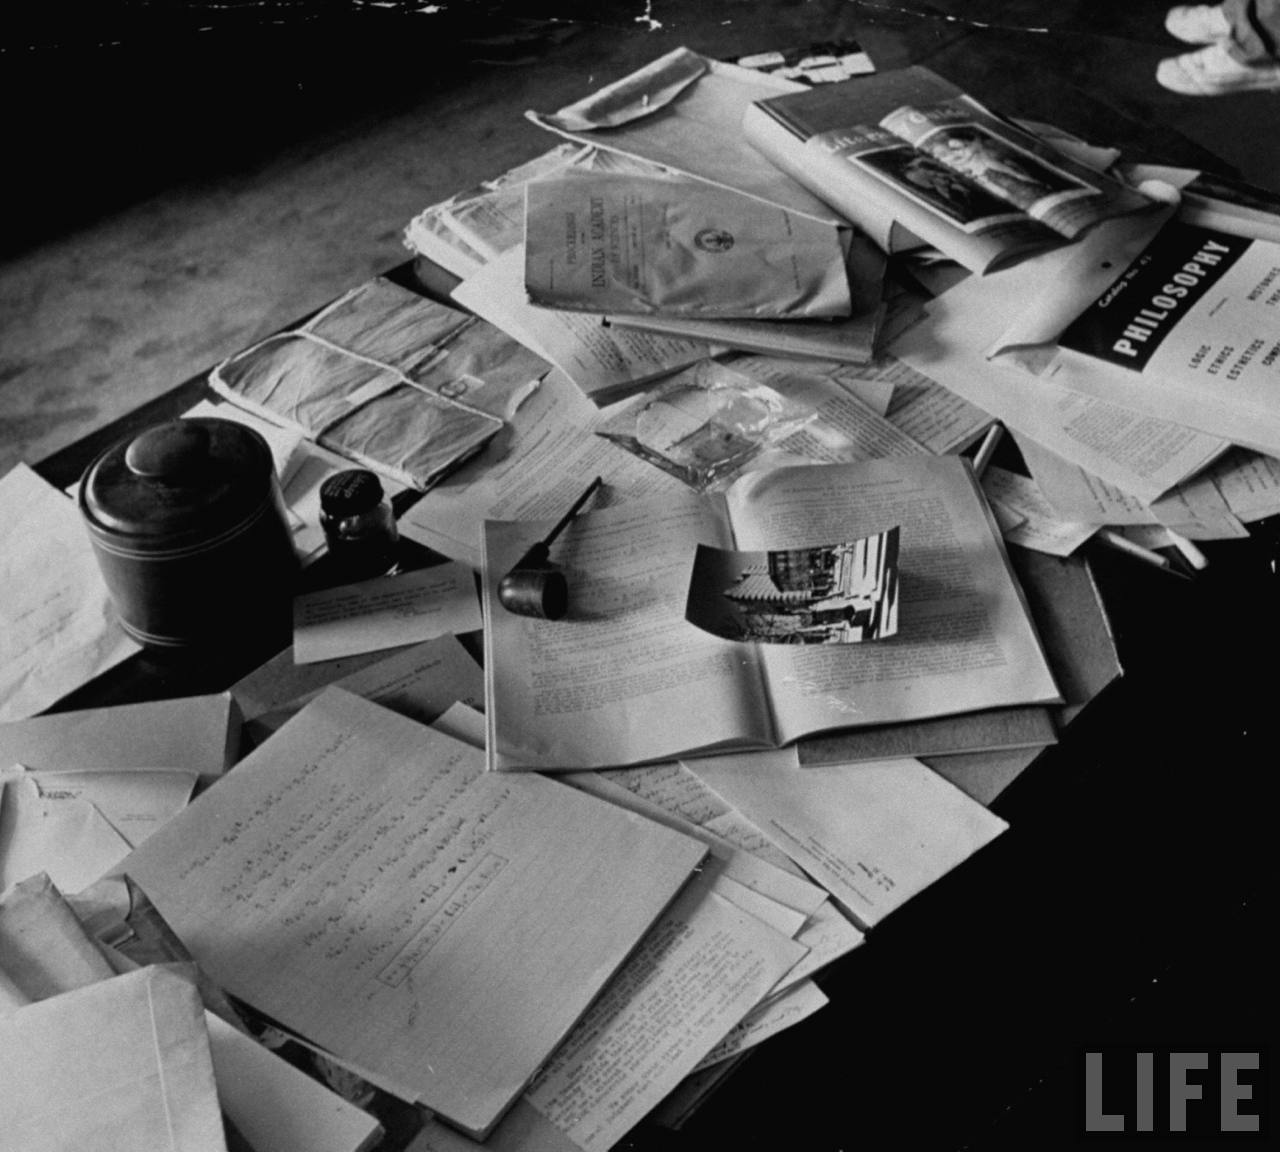 Einstein's desk photographed a day after his death - Imgur